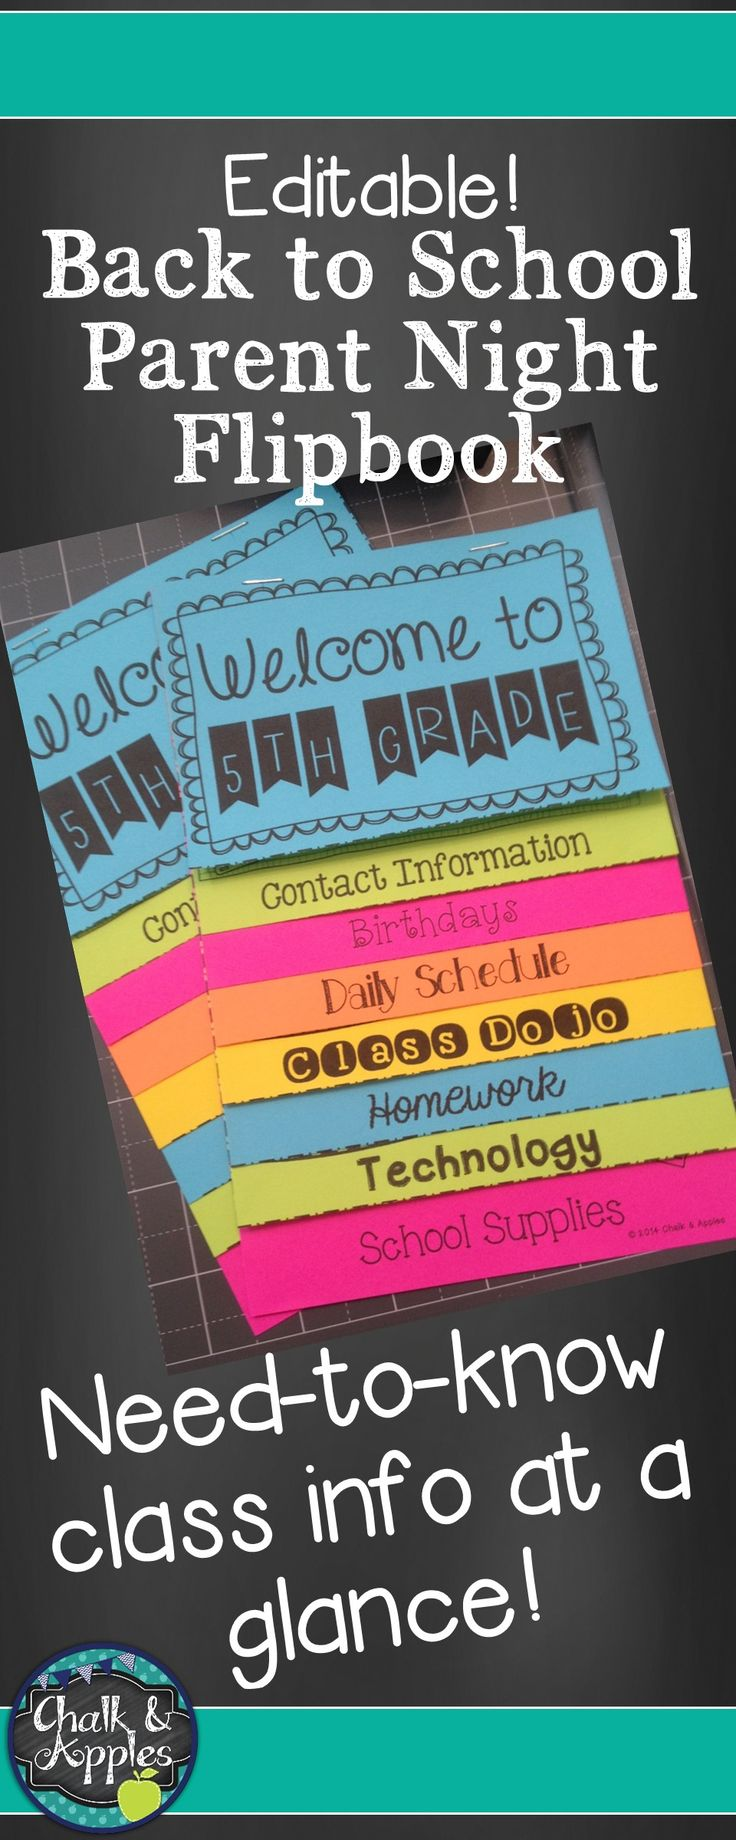 This editable flip book is an easy way to get important information to parents for Meet the Teacher or Parent Night at the beginning of the school year. Put a magnet on the back for a quick reference parents can hang on the fridge!